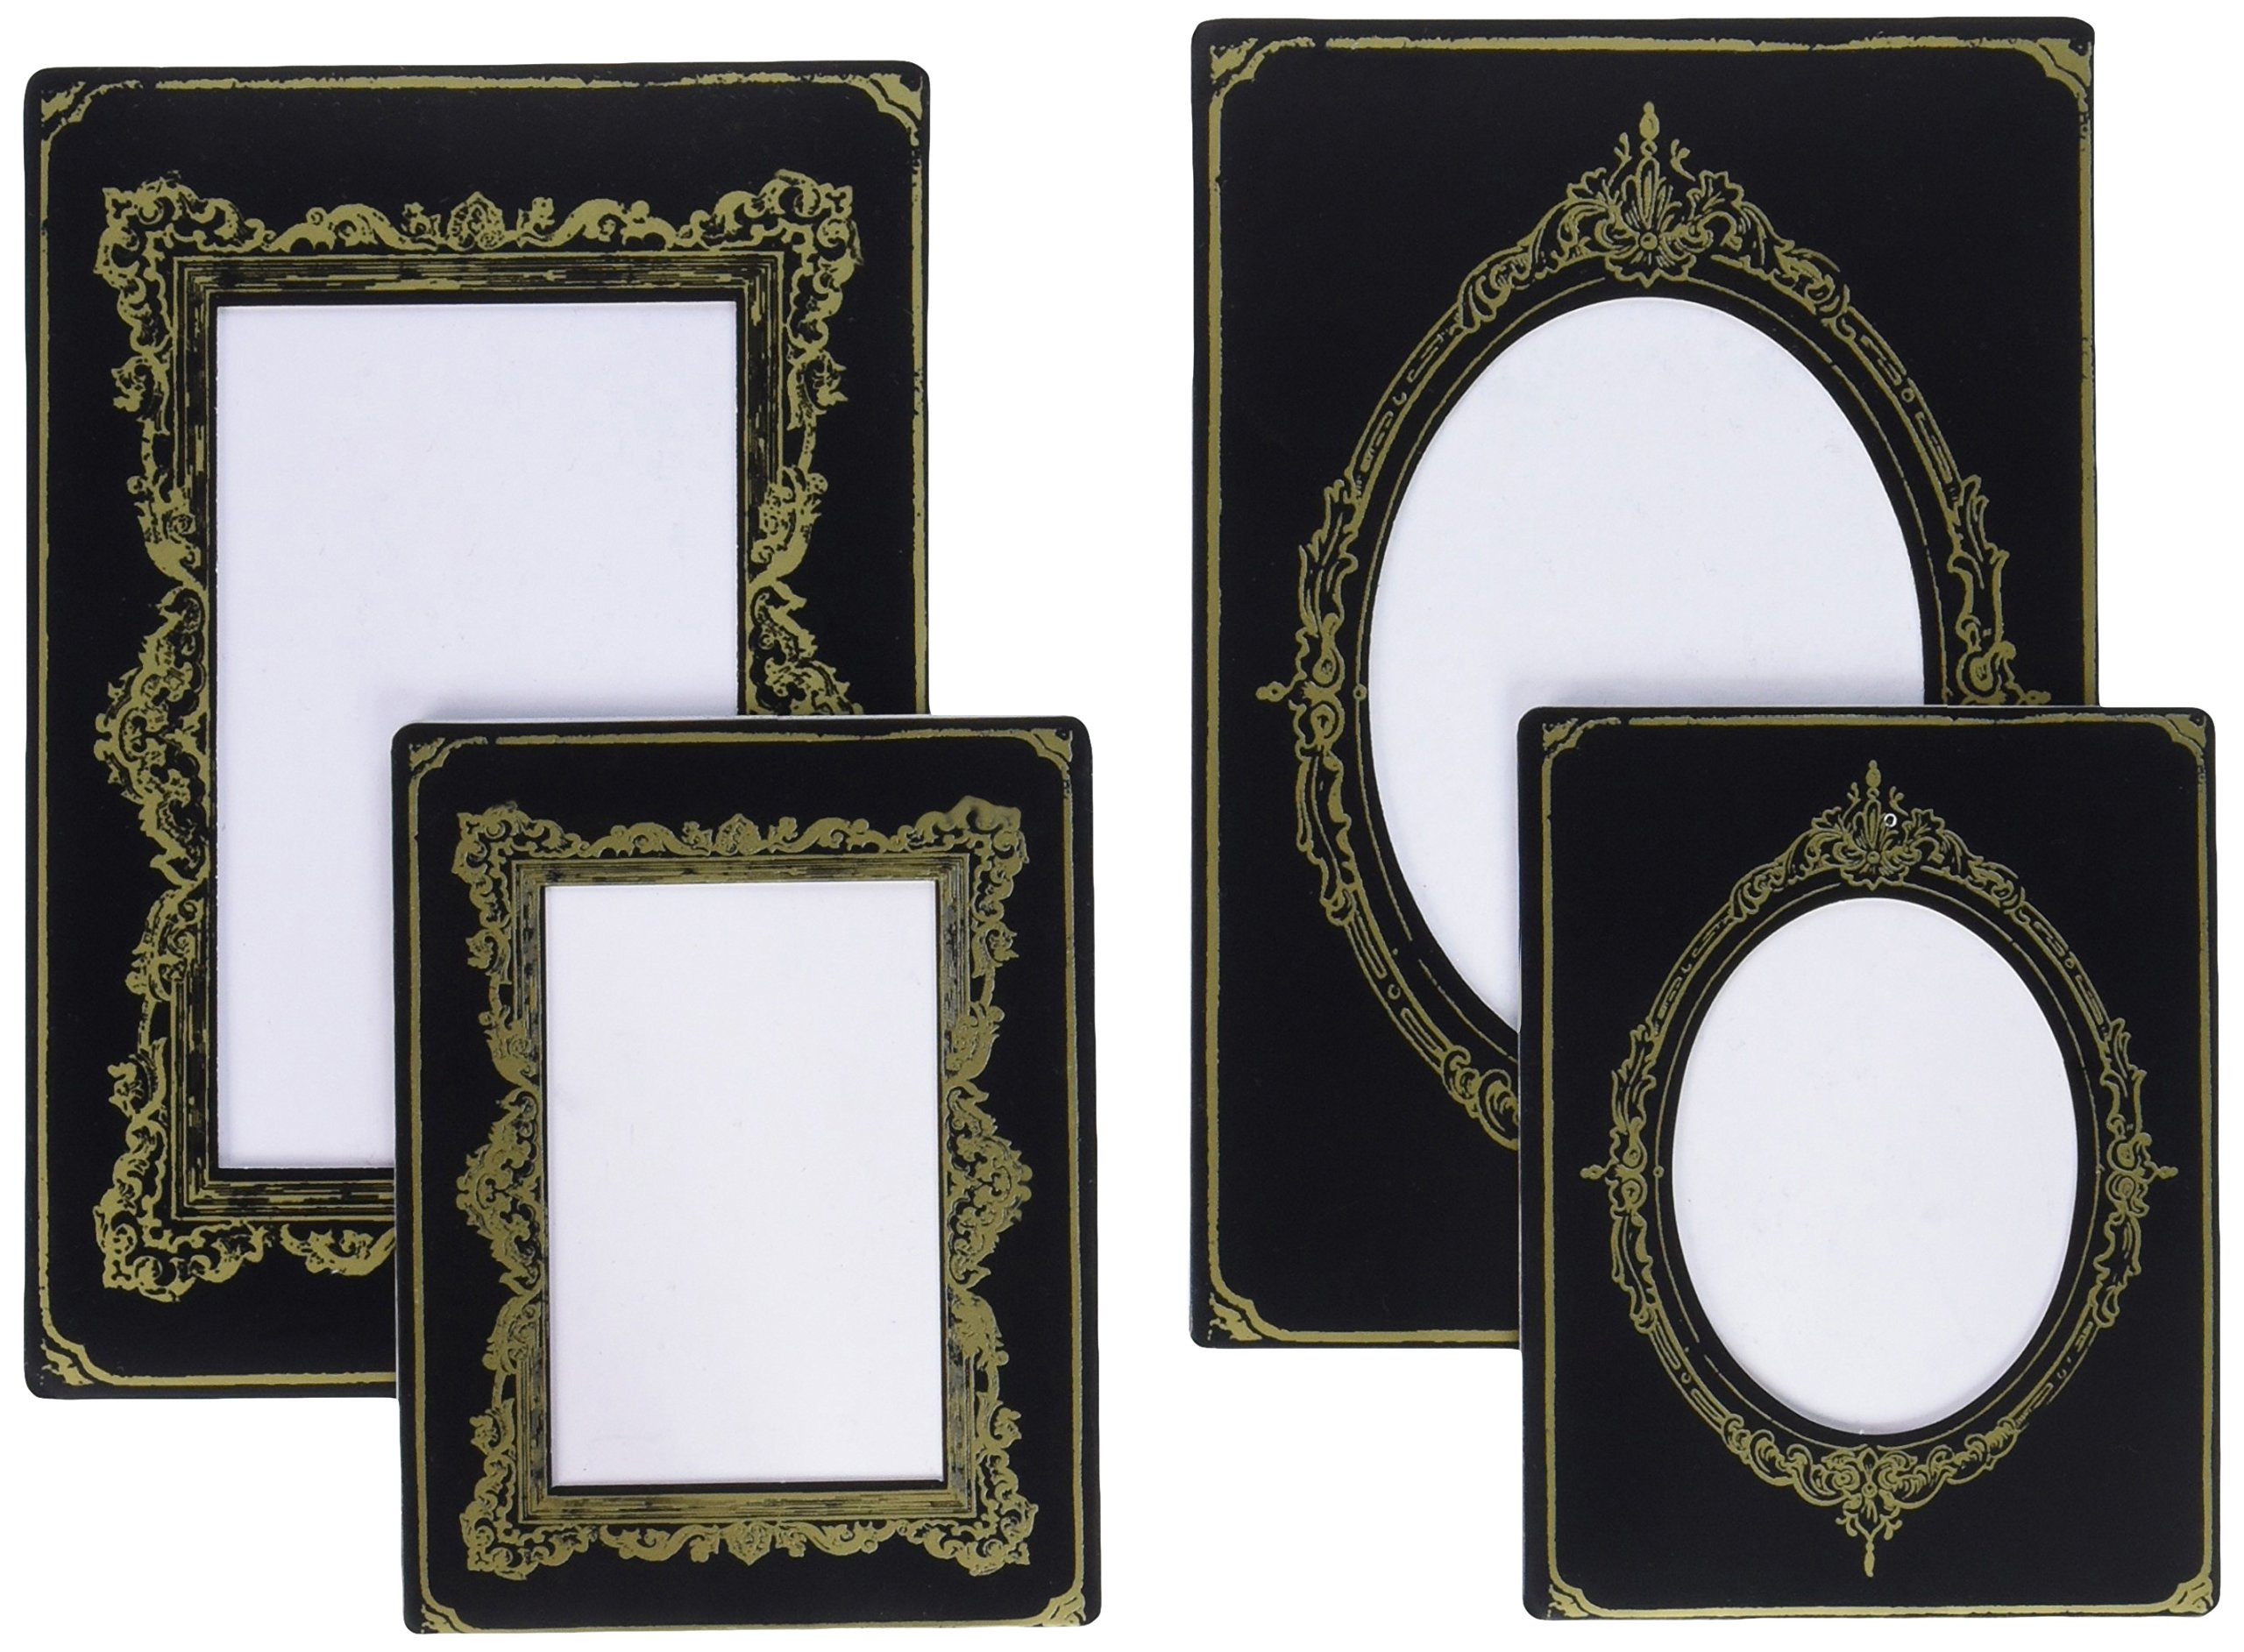 Tim Holtz Idea-ology Cabinet Cards Chipboard Frames 6 Per Pack, Sophisticate, Fits 3 x 4 and 4 x 6 Inch Photos, Black and Gold (TH93288) by ADVANTUS CORPORATION (Image #2)